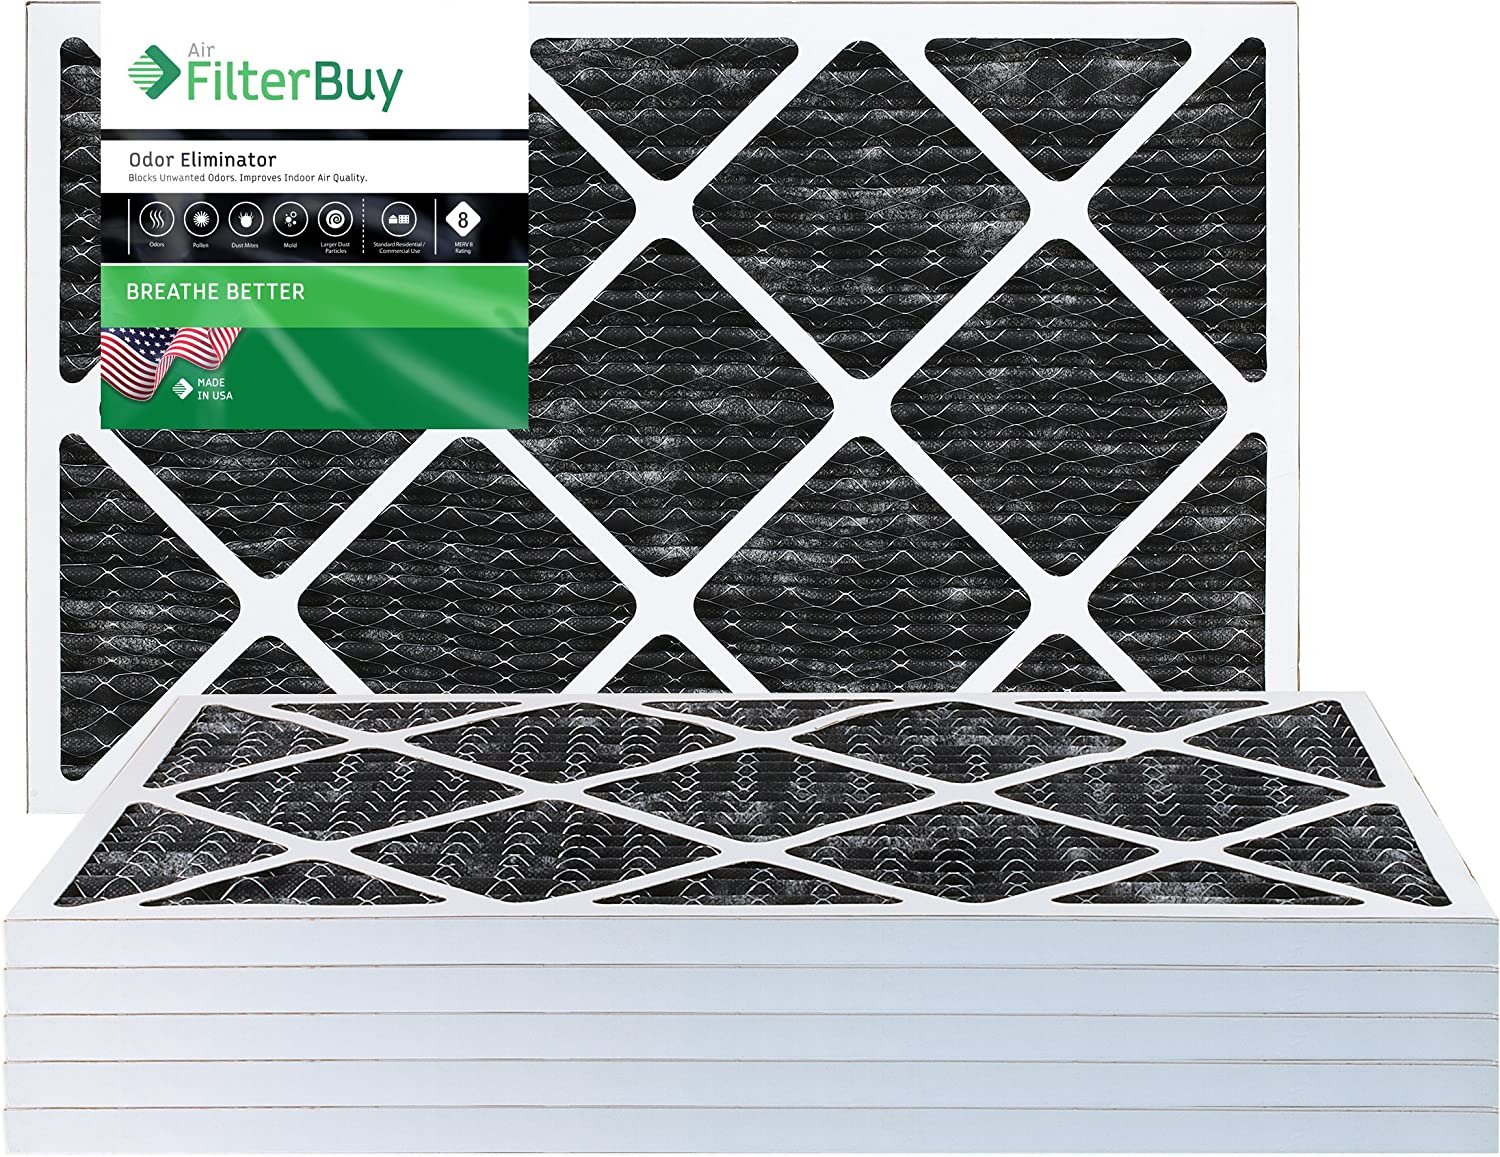 FilterBuy Allergen Odor Eliminator 12x24x1 MERV 8 Pleated AC Furnace Air Filter with Activated Carbon Pack of 6-12x24x1